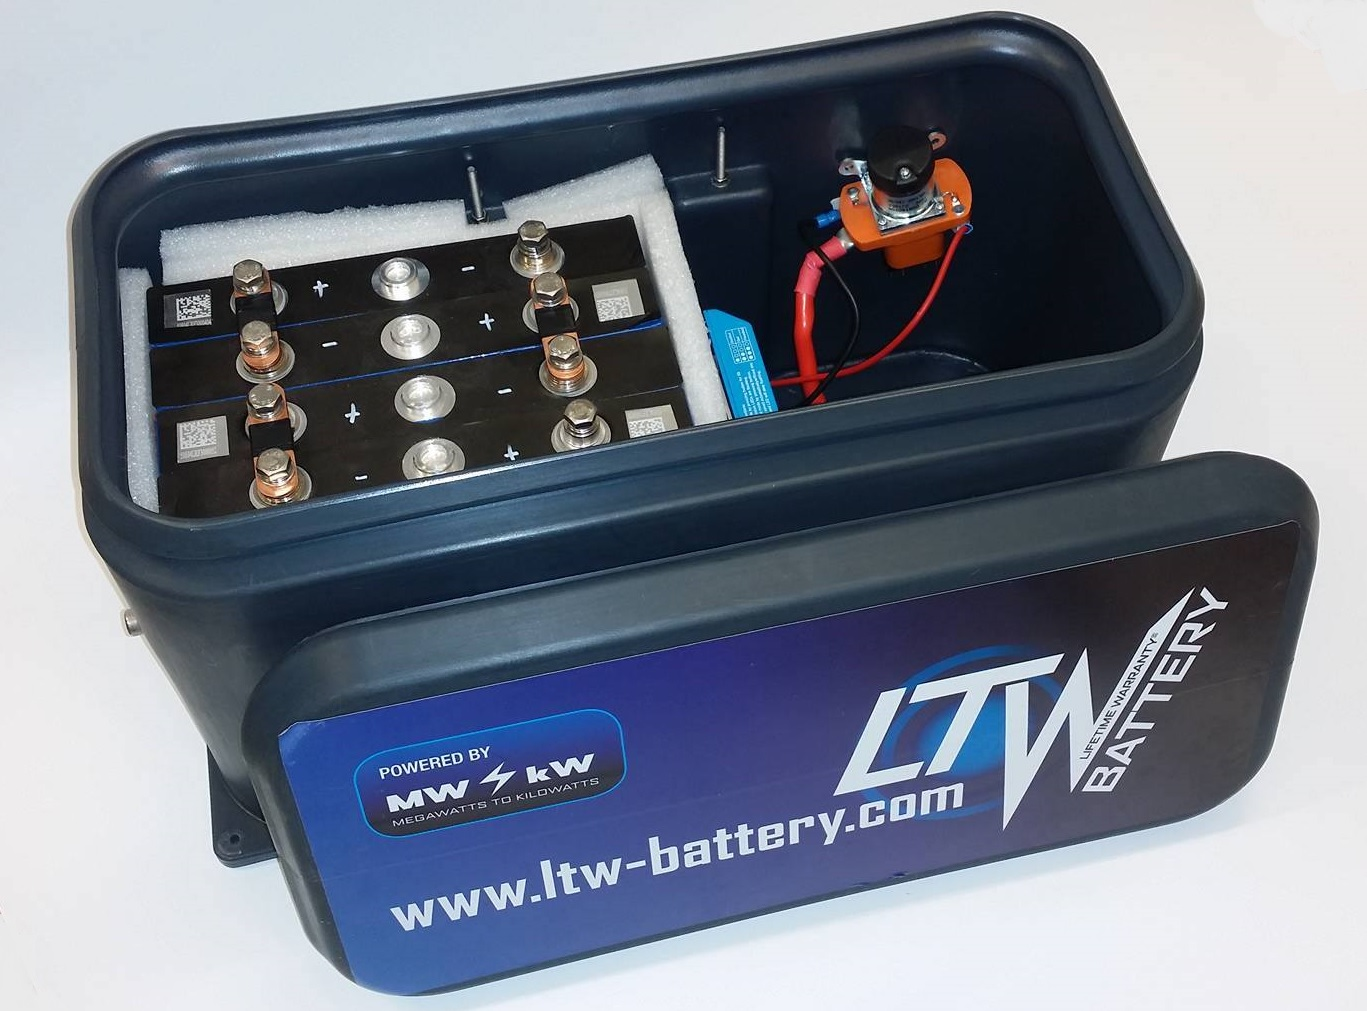 Waterproof battery boxes